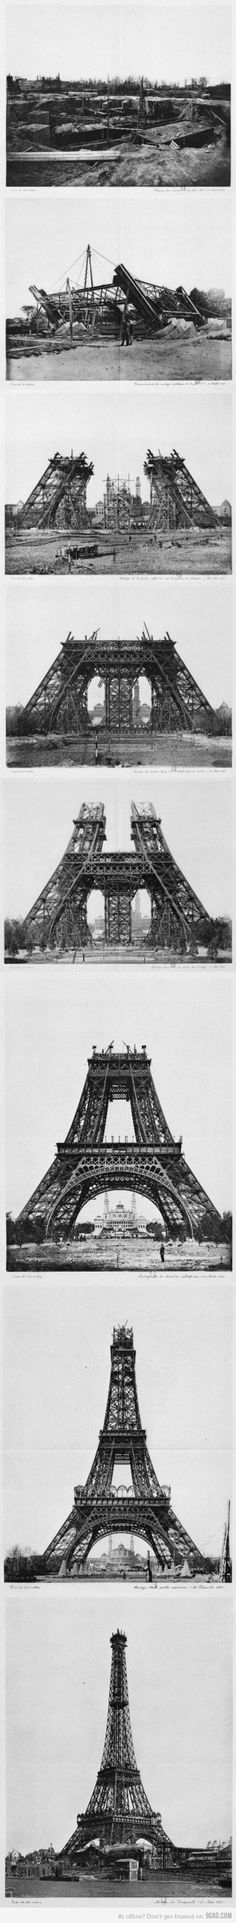 How the Eiffel Tower came into being